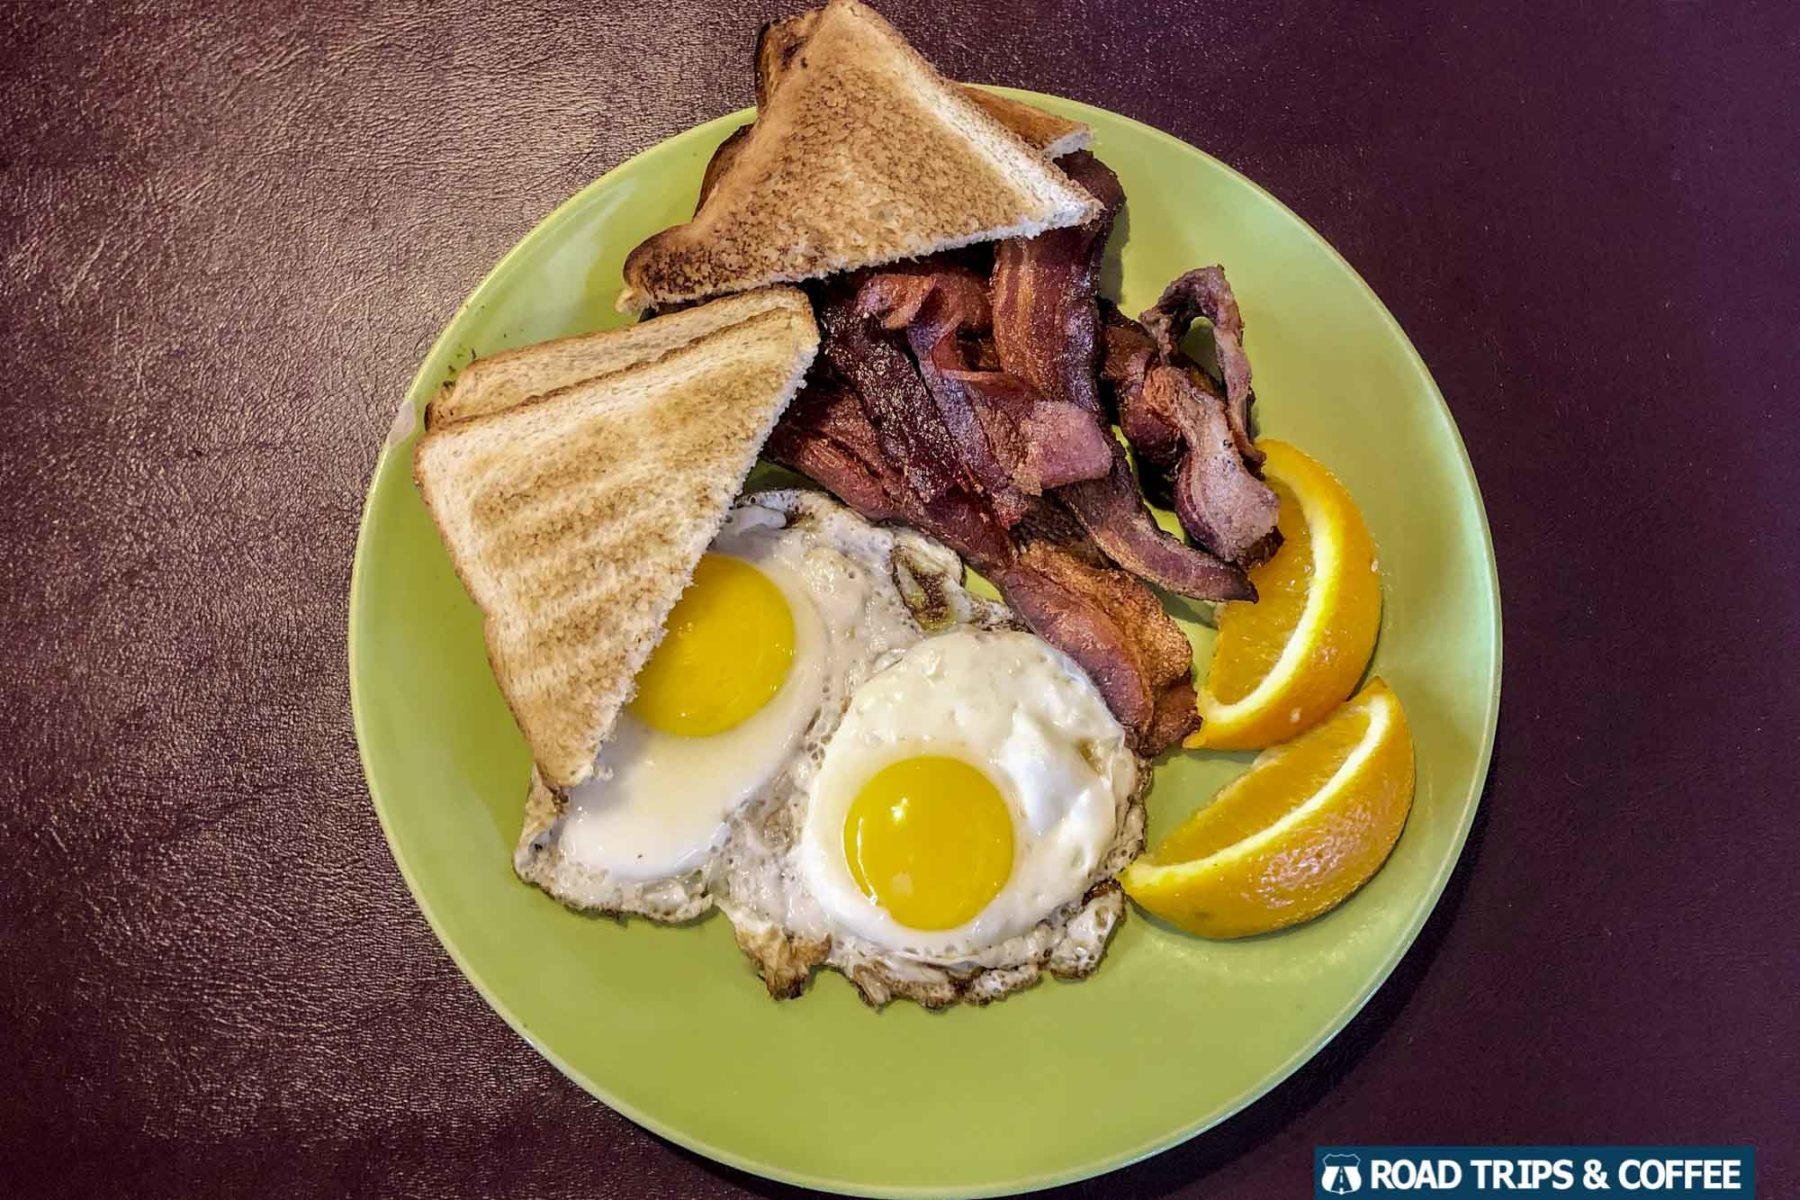 A full breakfast with eggs, bacon, and sausage at Razzleberry's Ice Cream Lab and Kitchen in Oak Ridge, Tennessee